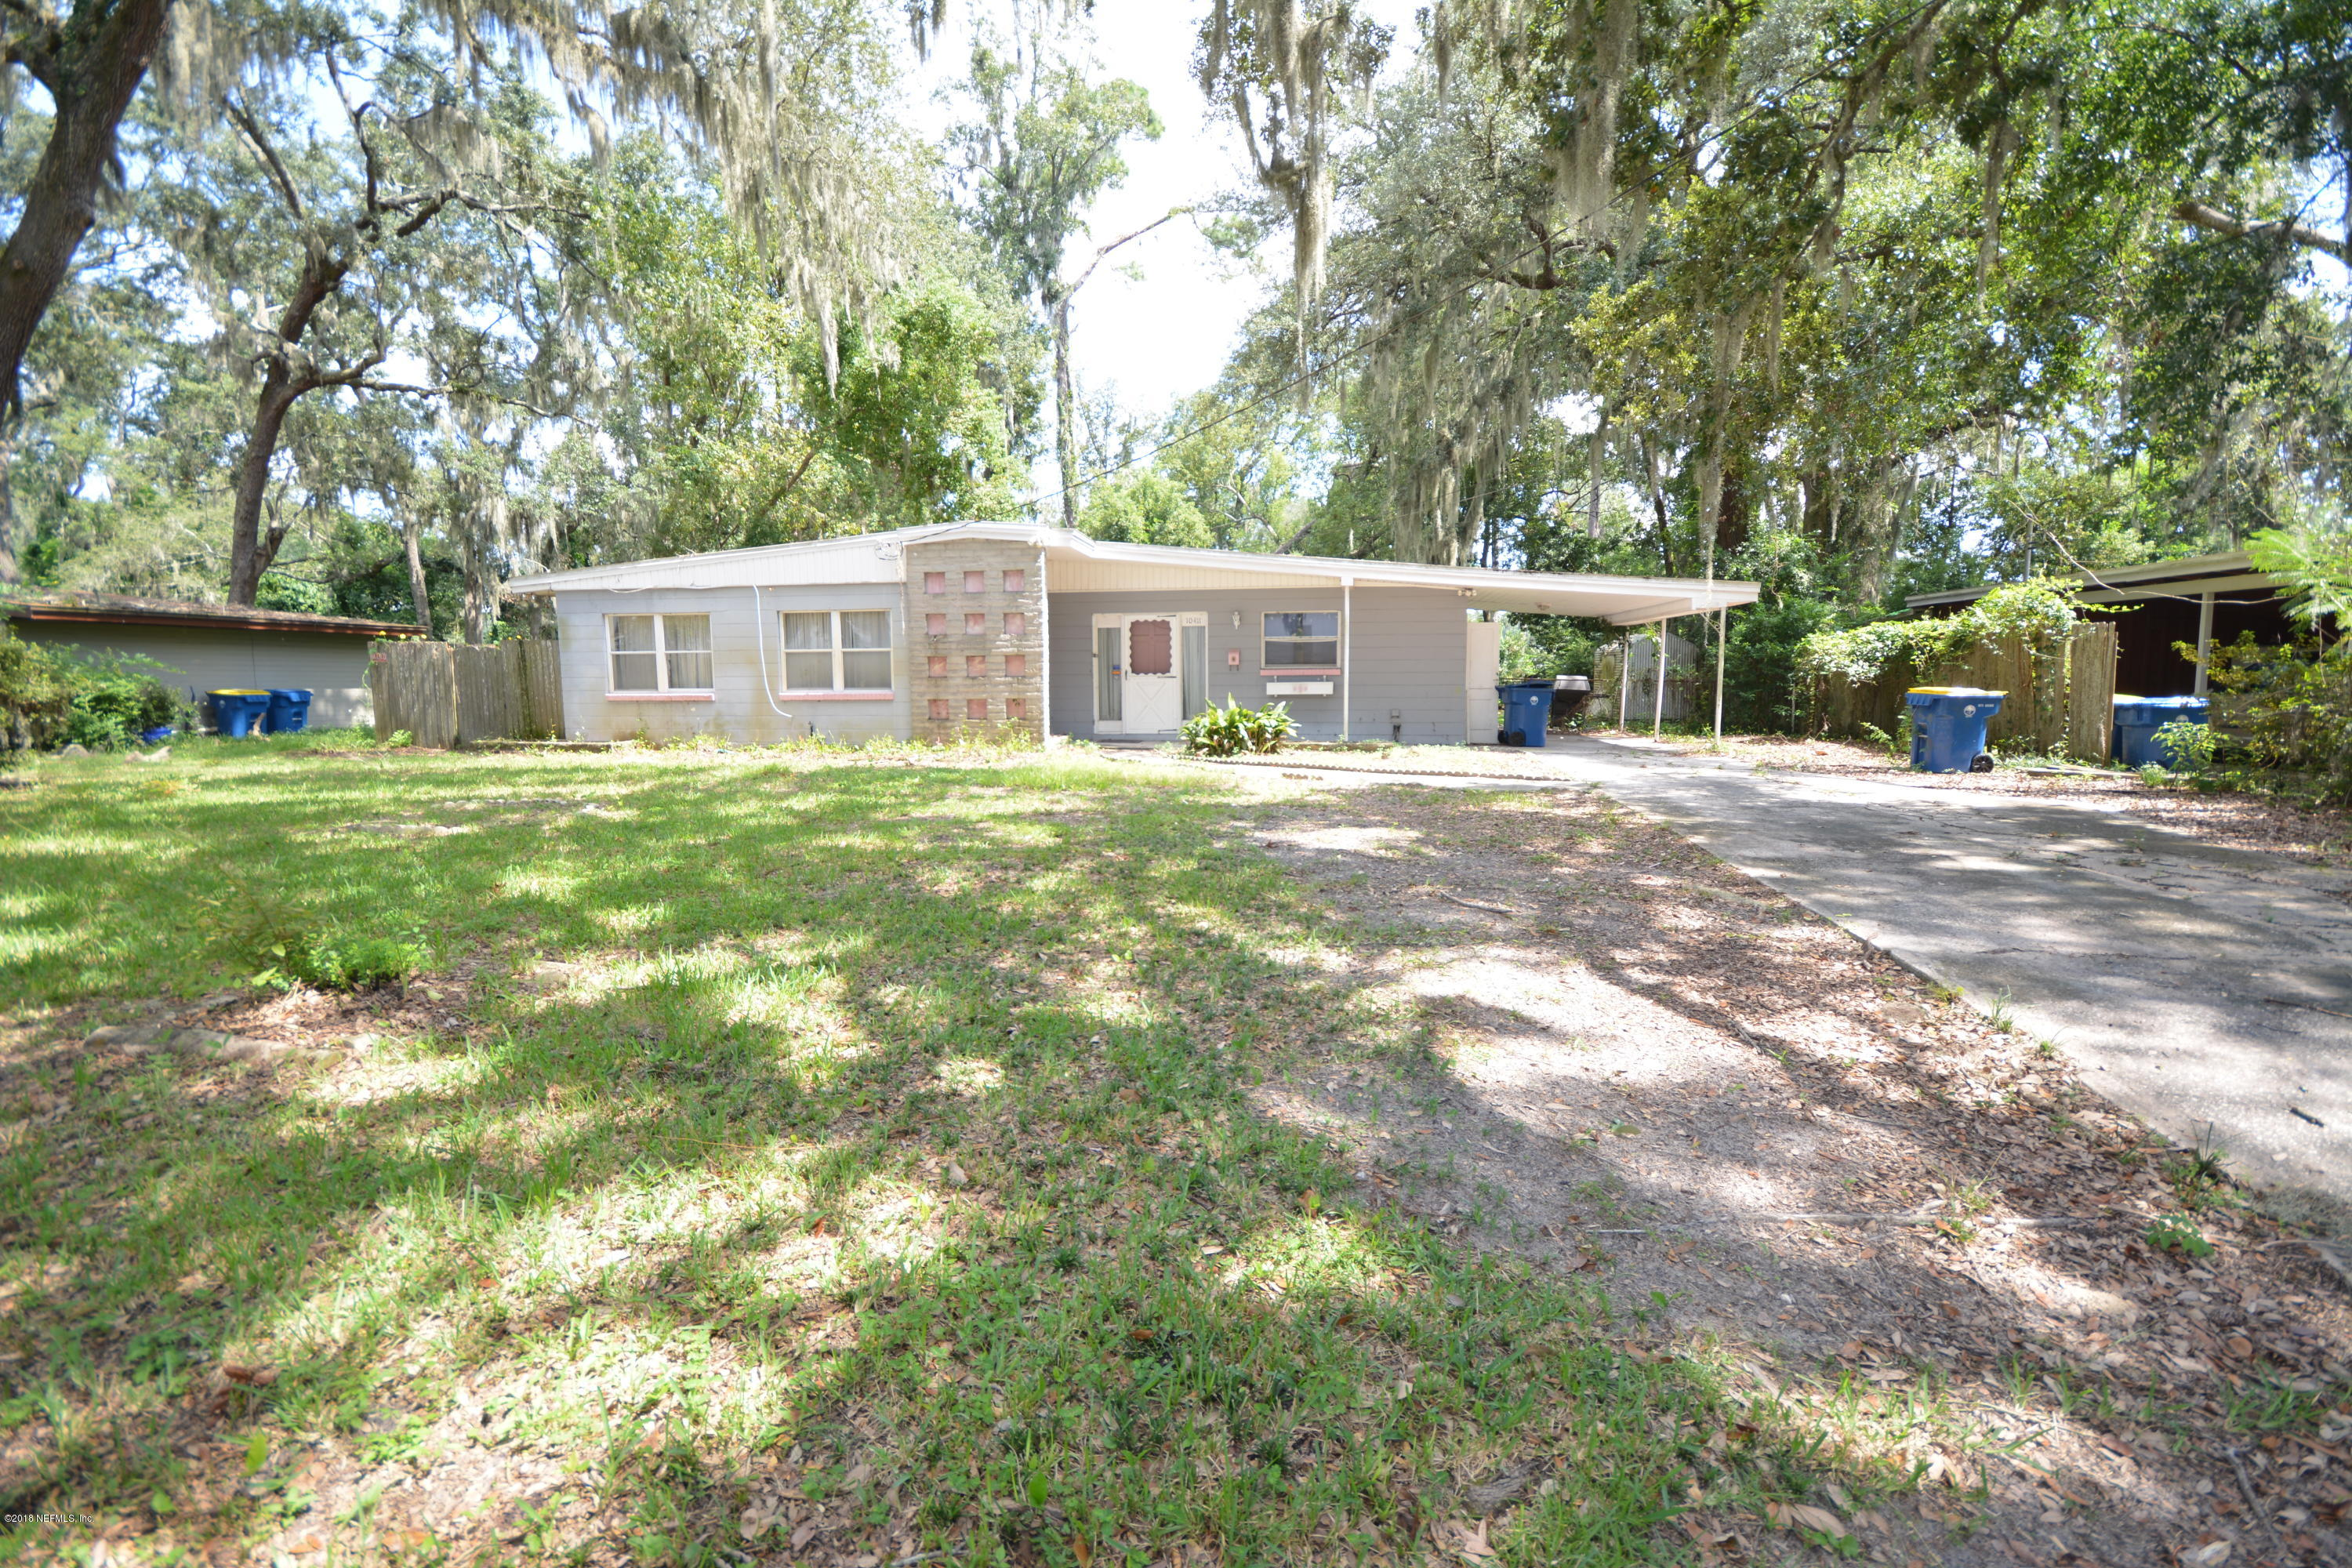 10411 RUTGERS, JACKSONVILLE, FLORIDA 32218, 3 Bedrooms Bedrooms, ,2 BathroomsBathrooms,Residential - single family,For sale,RUTGERS,959732